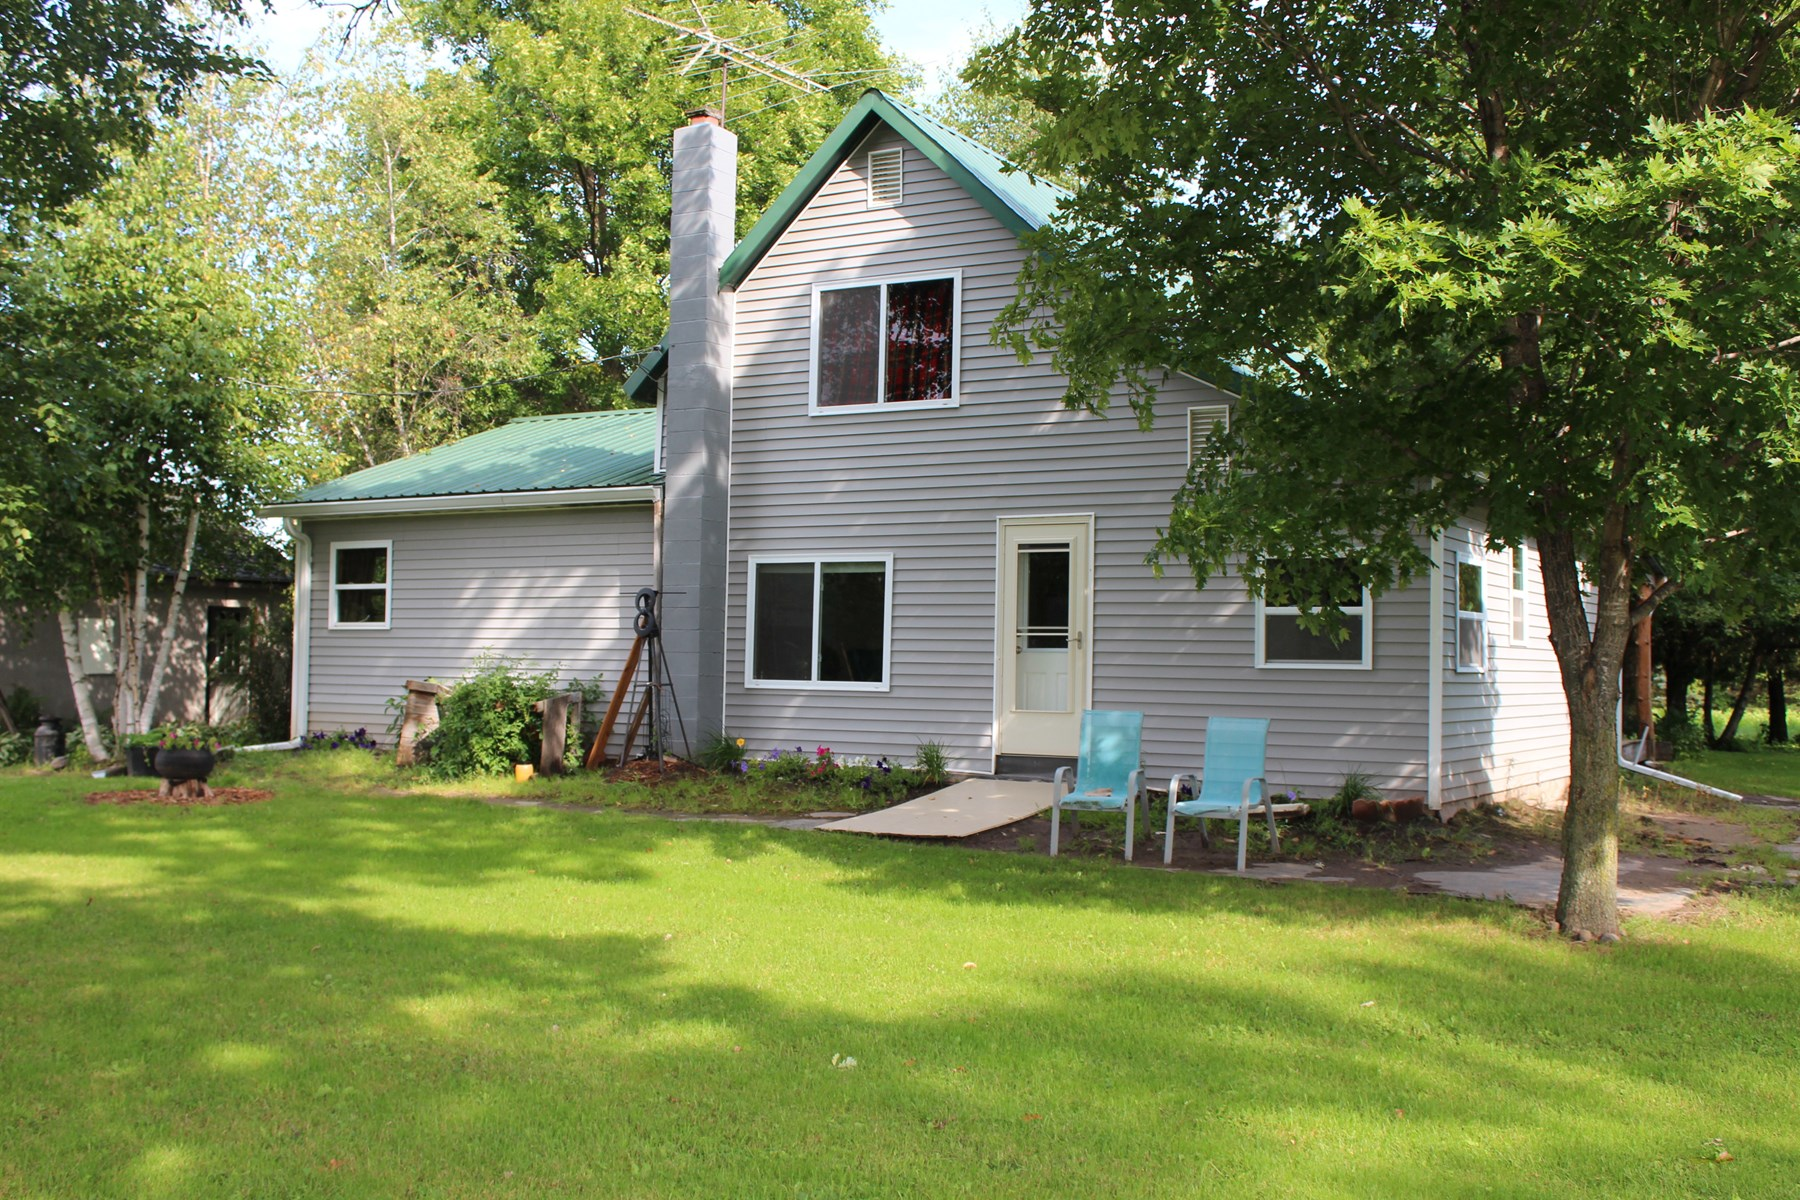 30 Acre Milaca MN Hobby Farm/Country Home For Sale